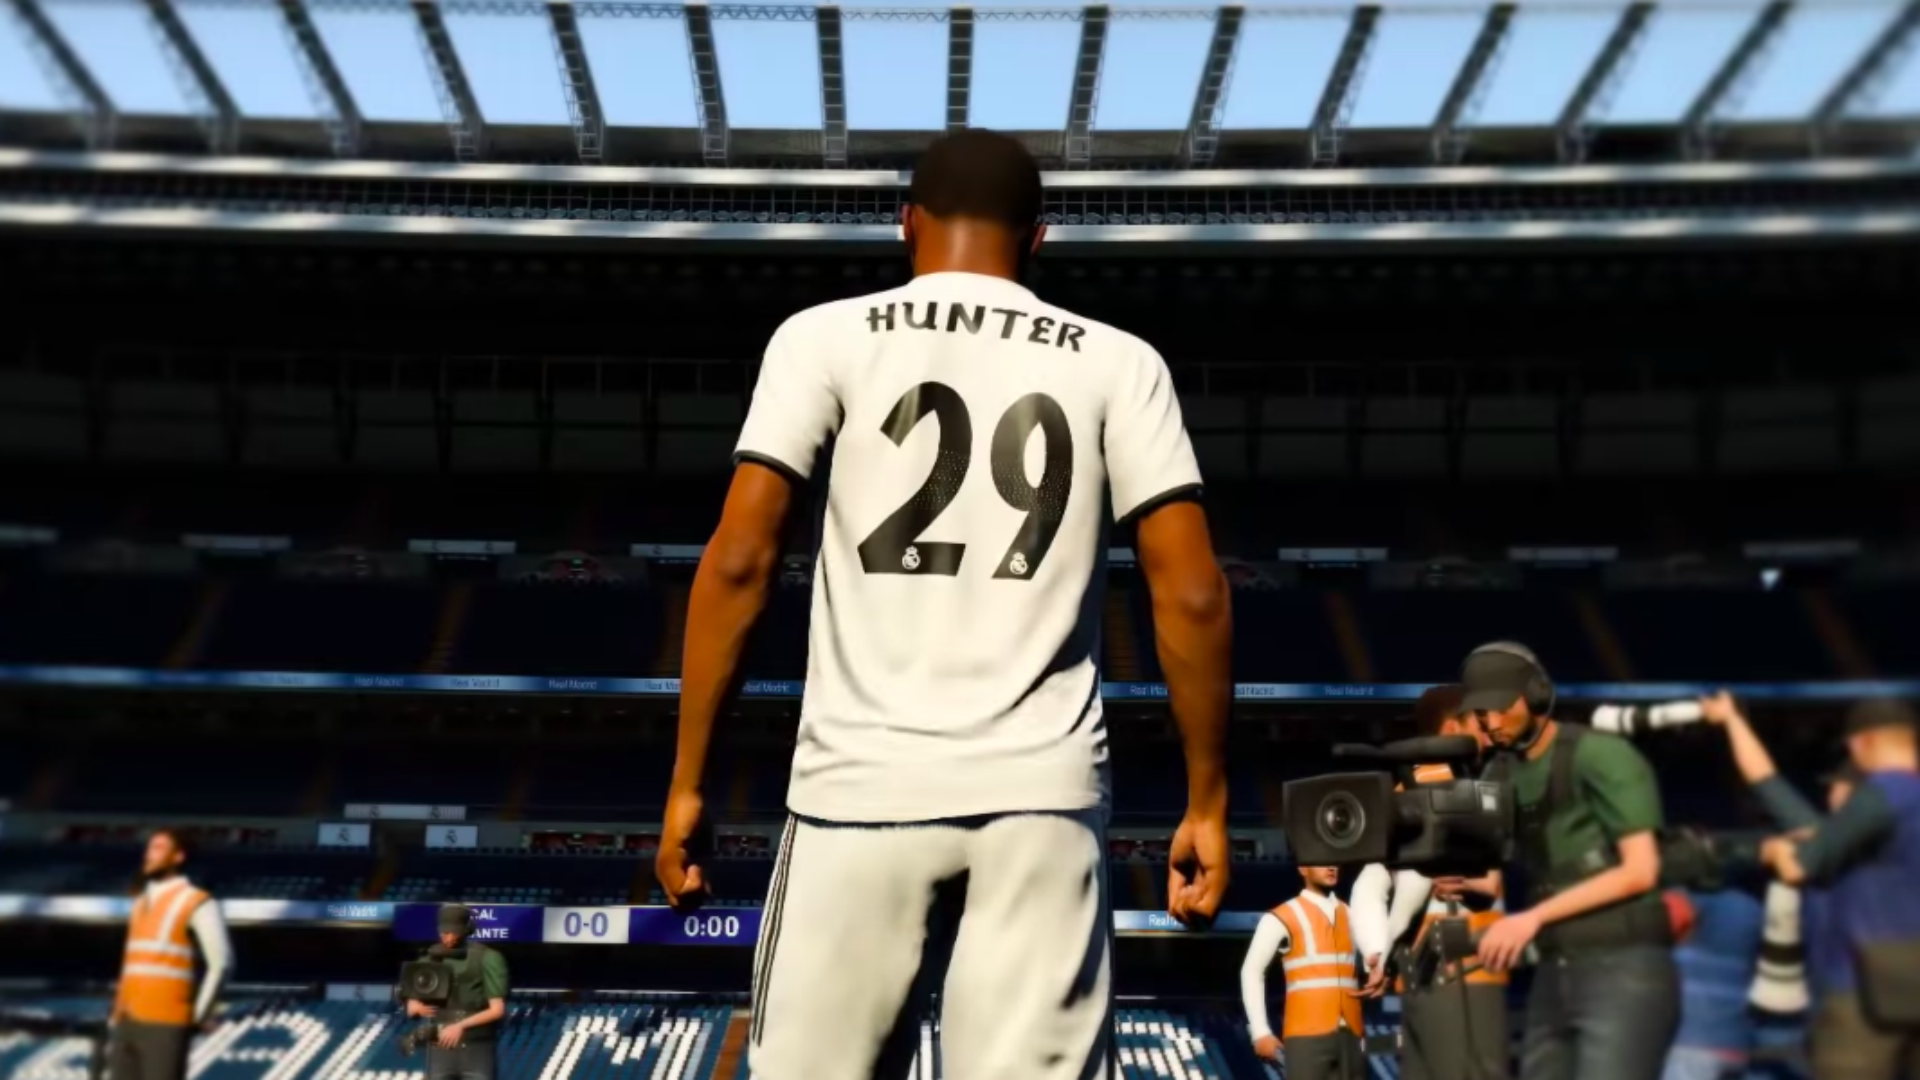 FIFA 19 Alex Hunter Real Madrid